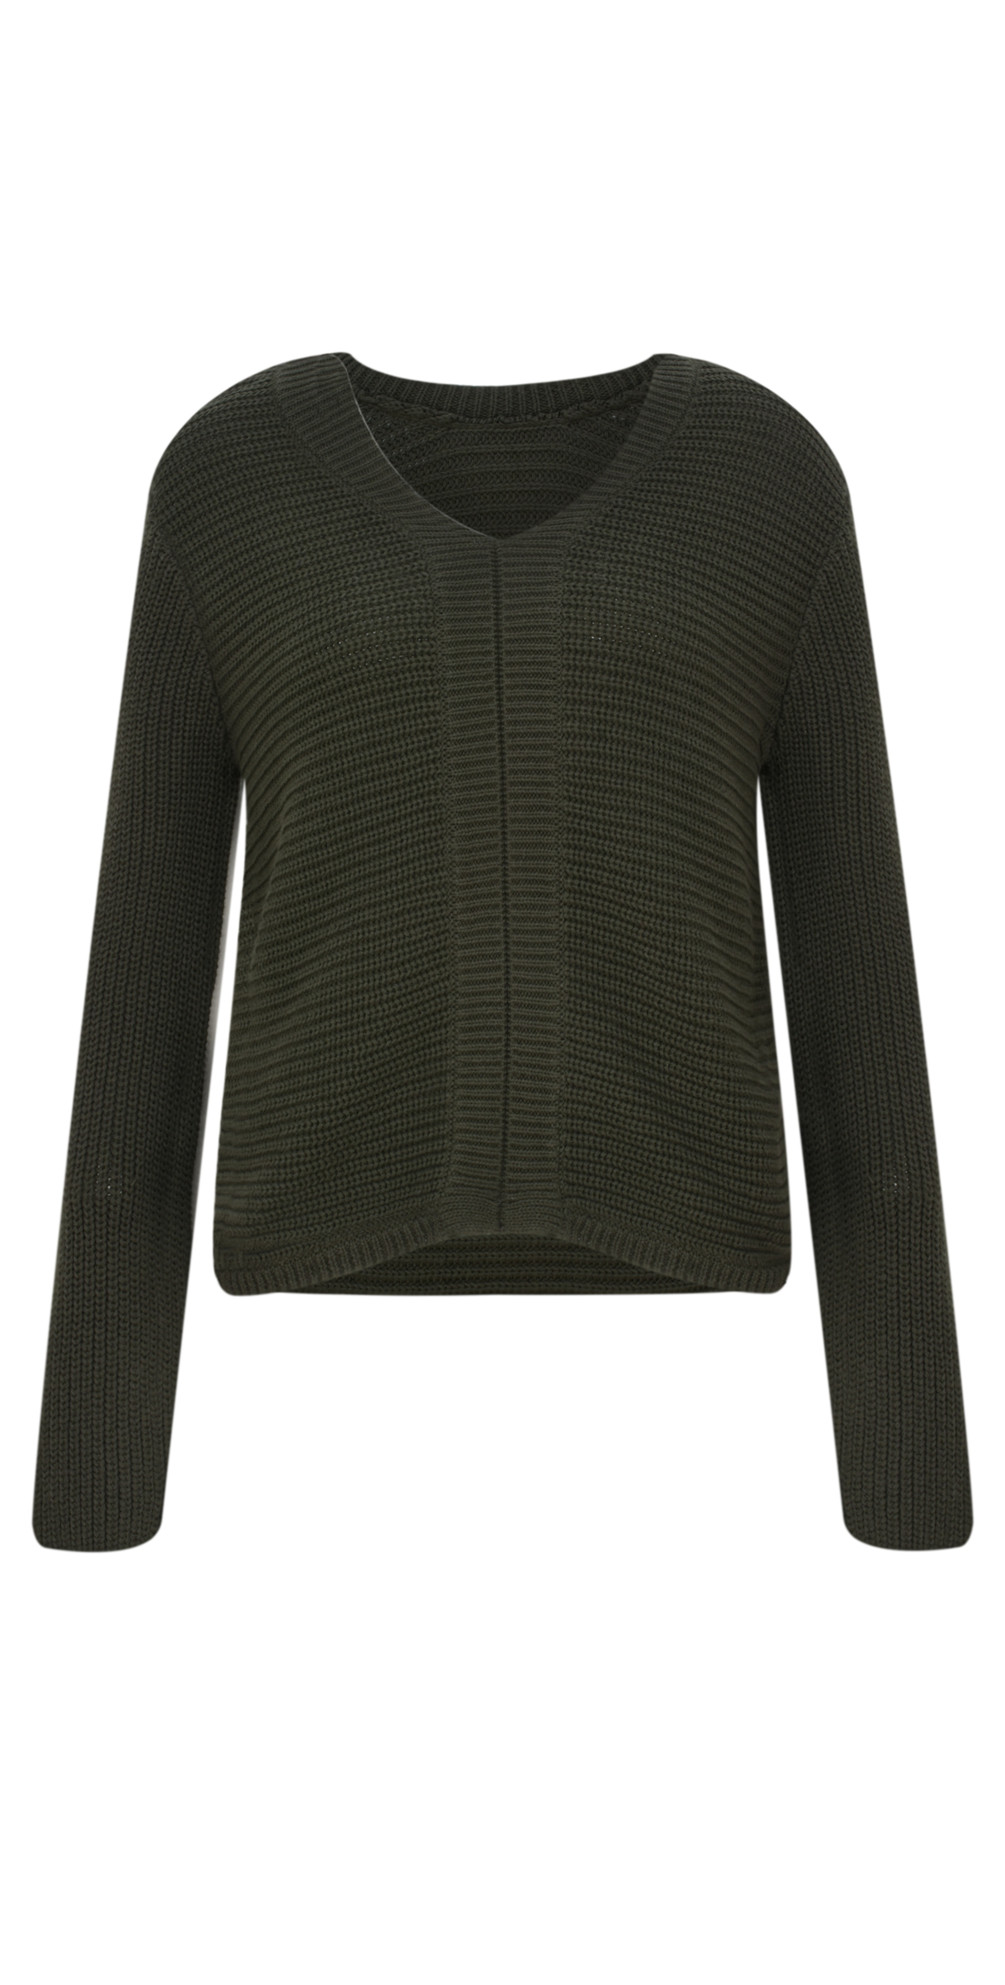 0cffcaf5385c1 Sandwich Clothing Two Way Chunky Knit Jumper in Dark Olive